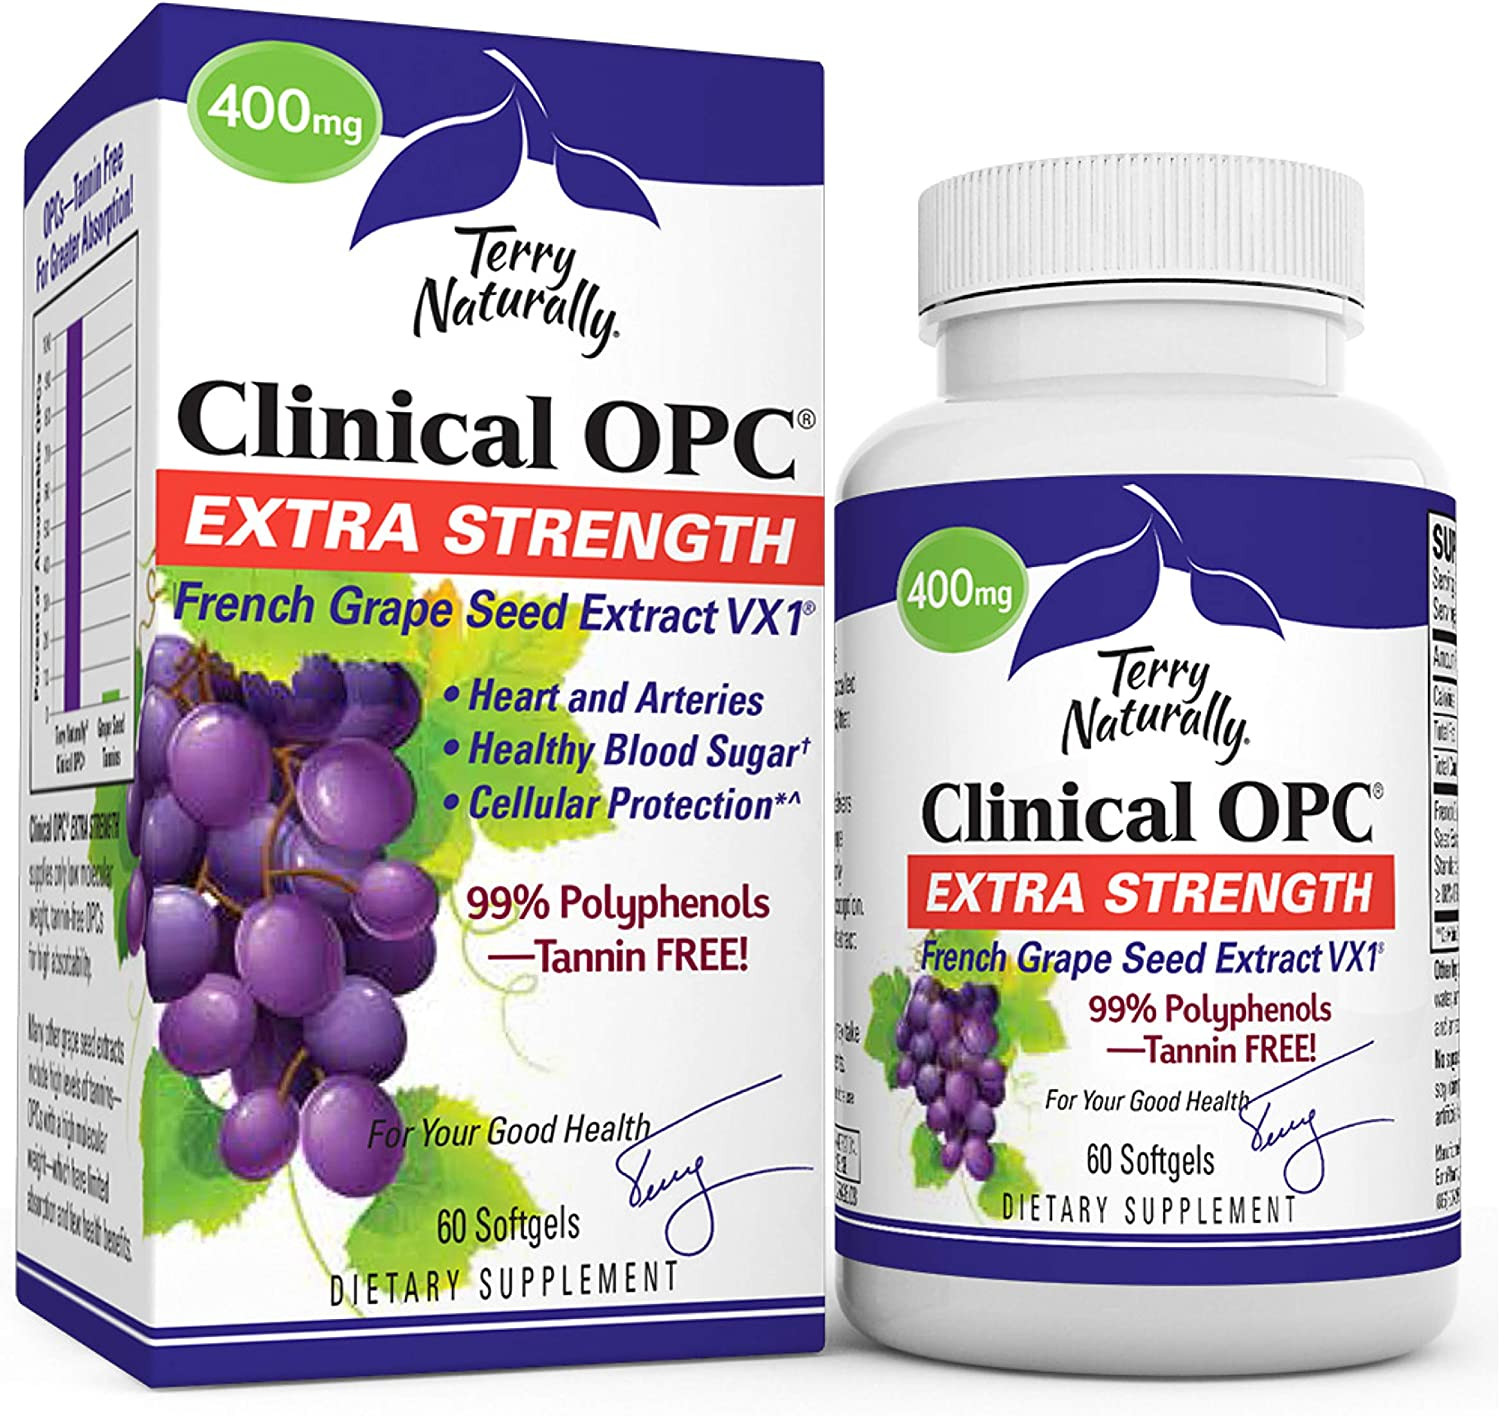 Terry Naturally Clinical OPC Extra Strength - 60 Softgels - French Grape Seed Extract Supplement, Supports Heart & Immune Health, Antioxidant - Non-GMO, Gluten-Free, Kosher - 60 Servings